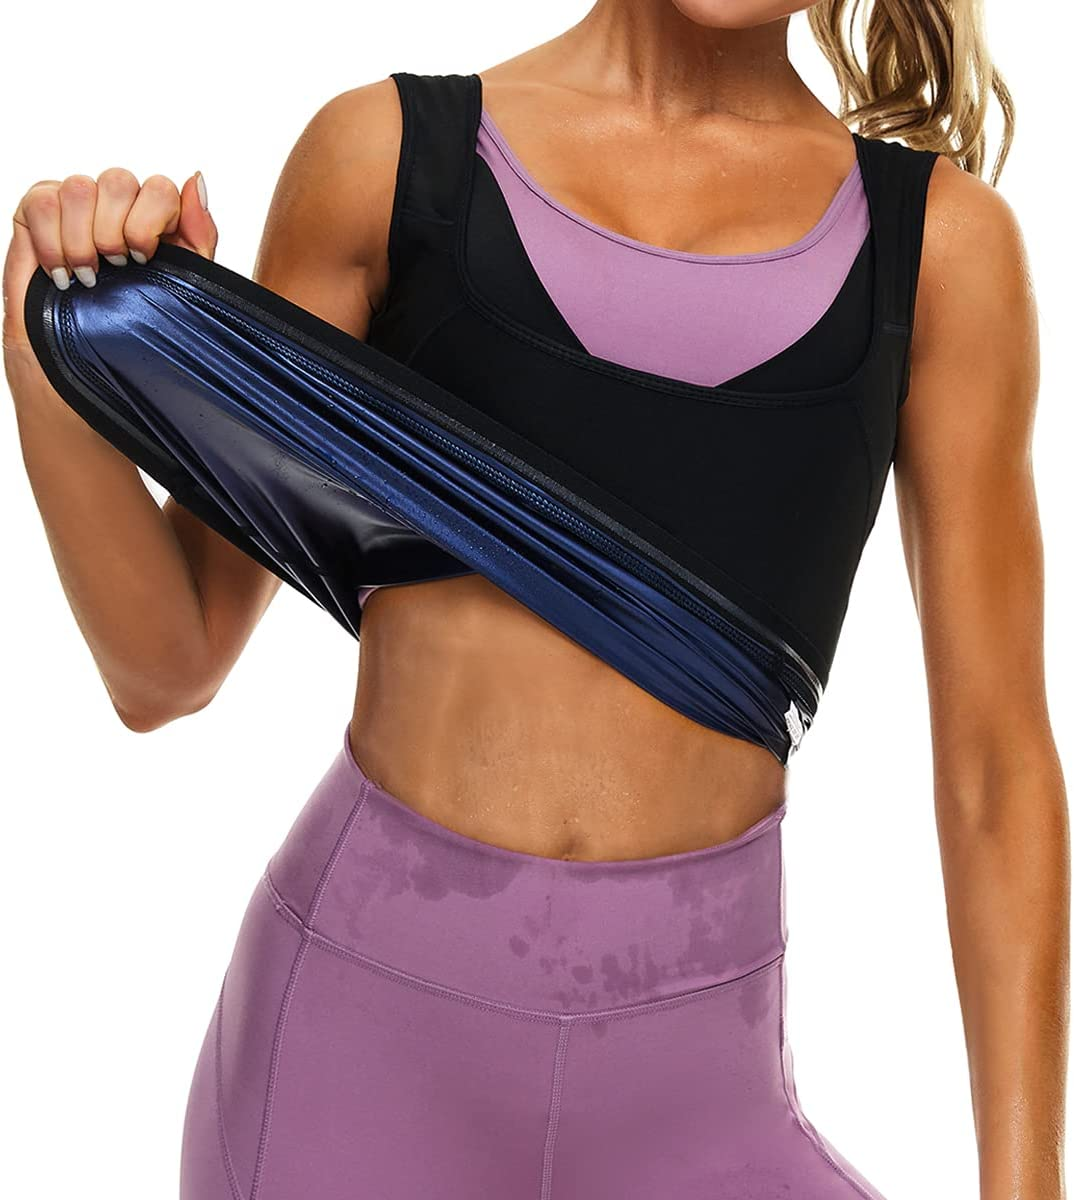 Lushforest Sauna Vest for Women Sweat Top Workout Max 71% OFF W Premium Tank SEAL limited product